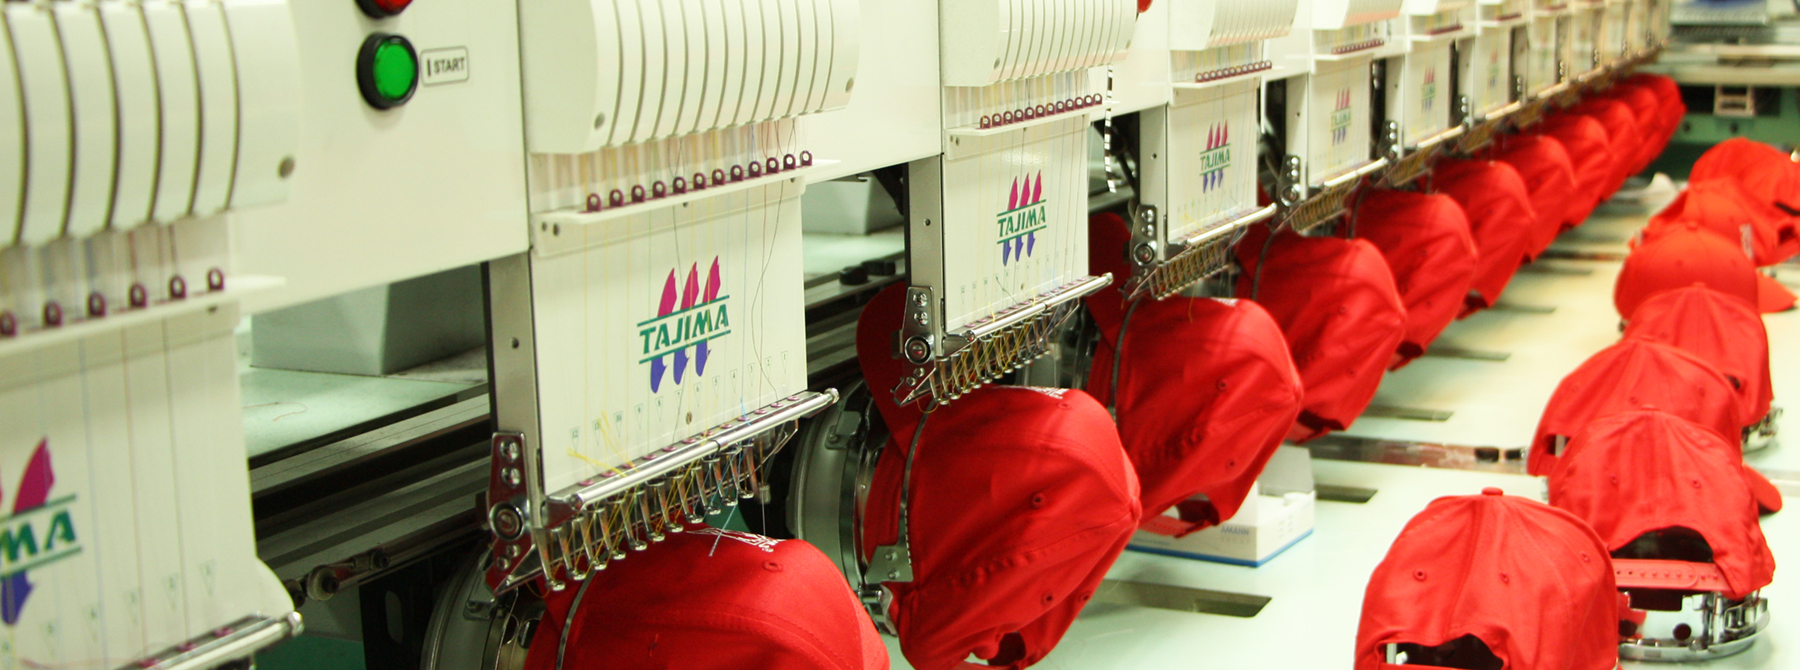 Most leading edge automated screen printing and embroidery equipment for decorating custom t-shirts